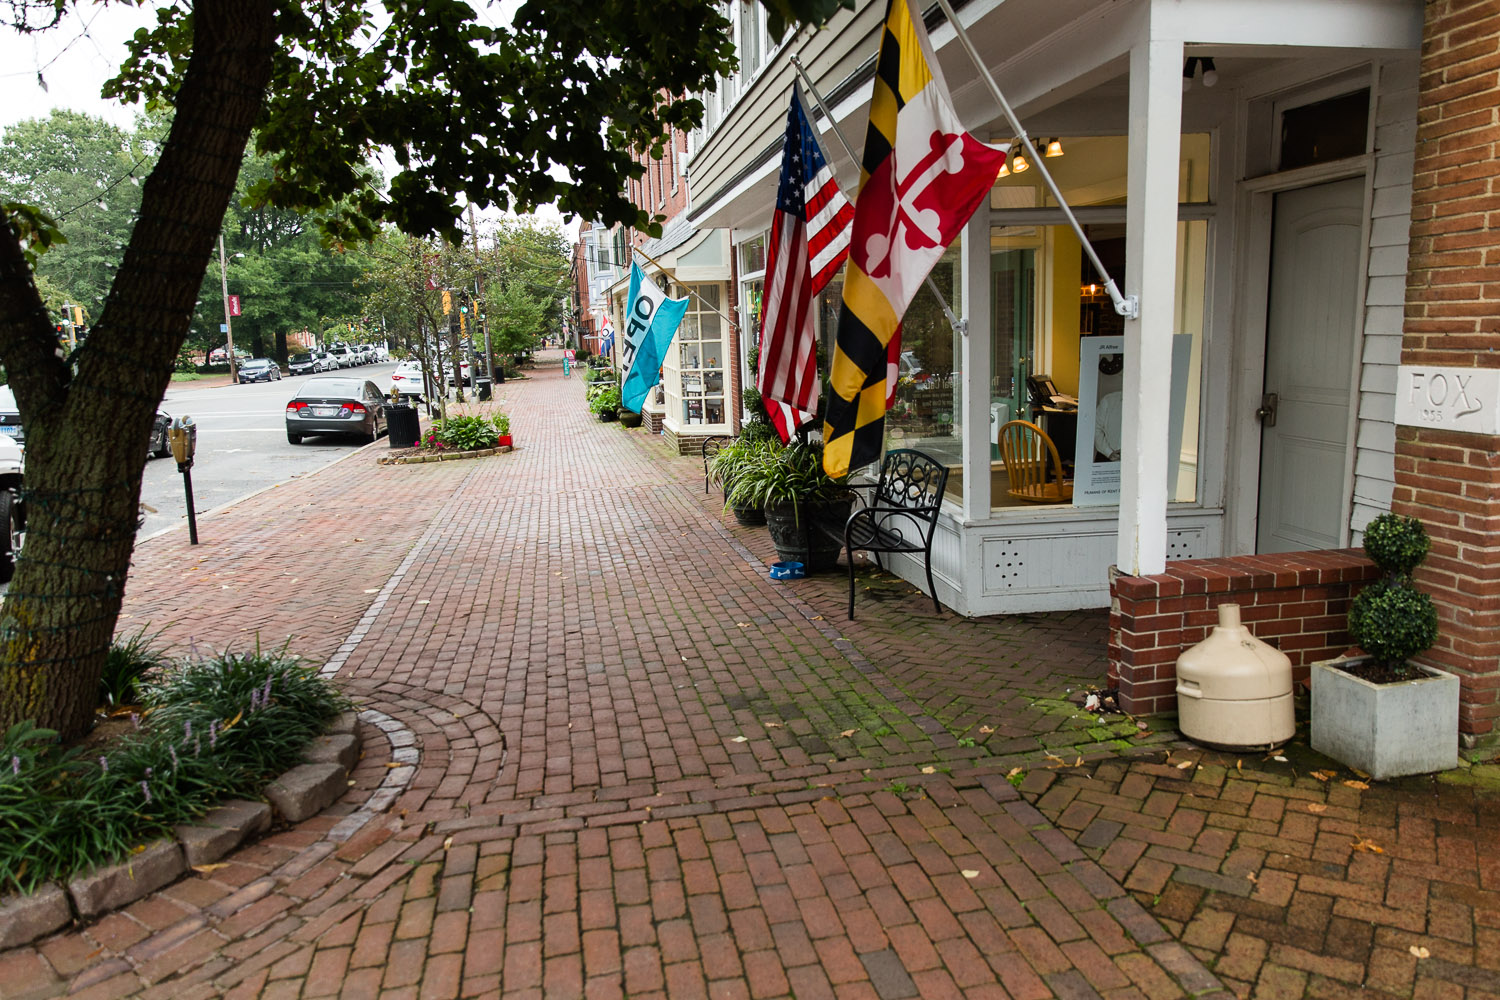 Chestertown-Maryland-Shopping-20-ss.jpg